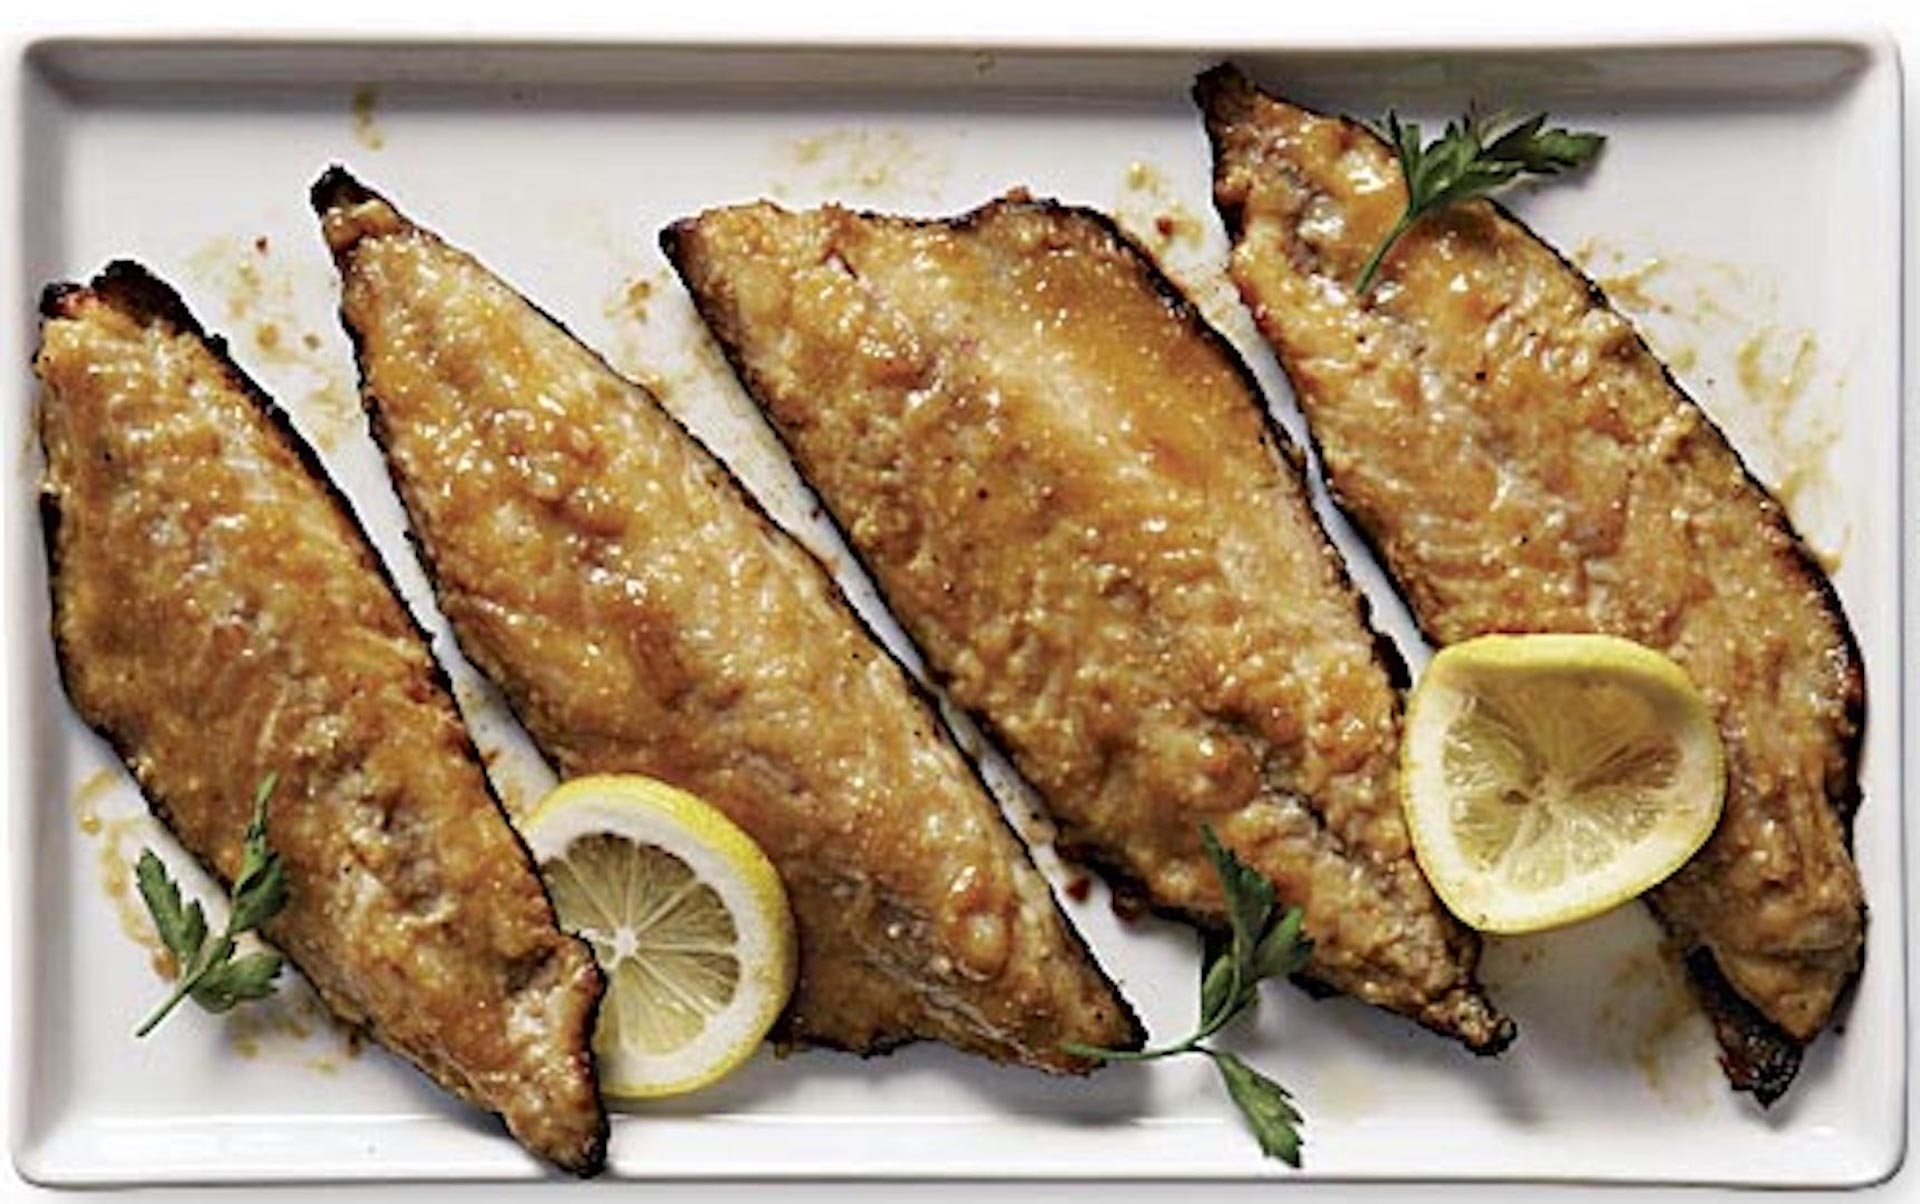 Pan-fried mackerel fillets